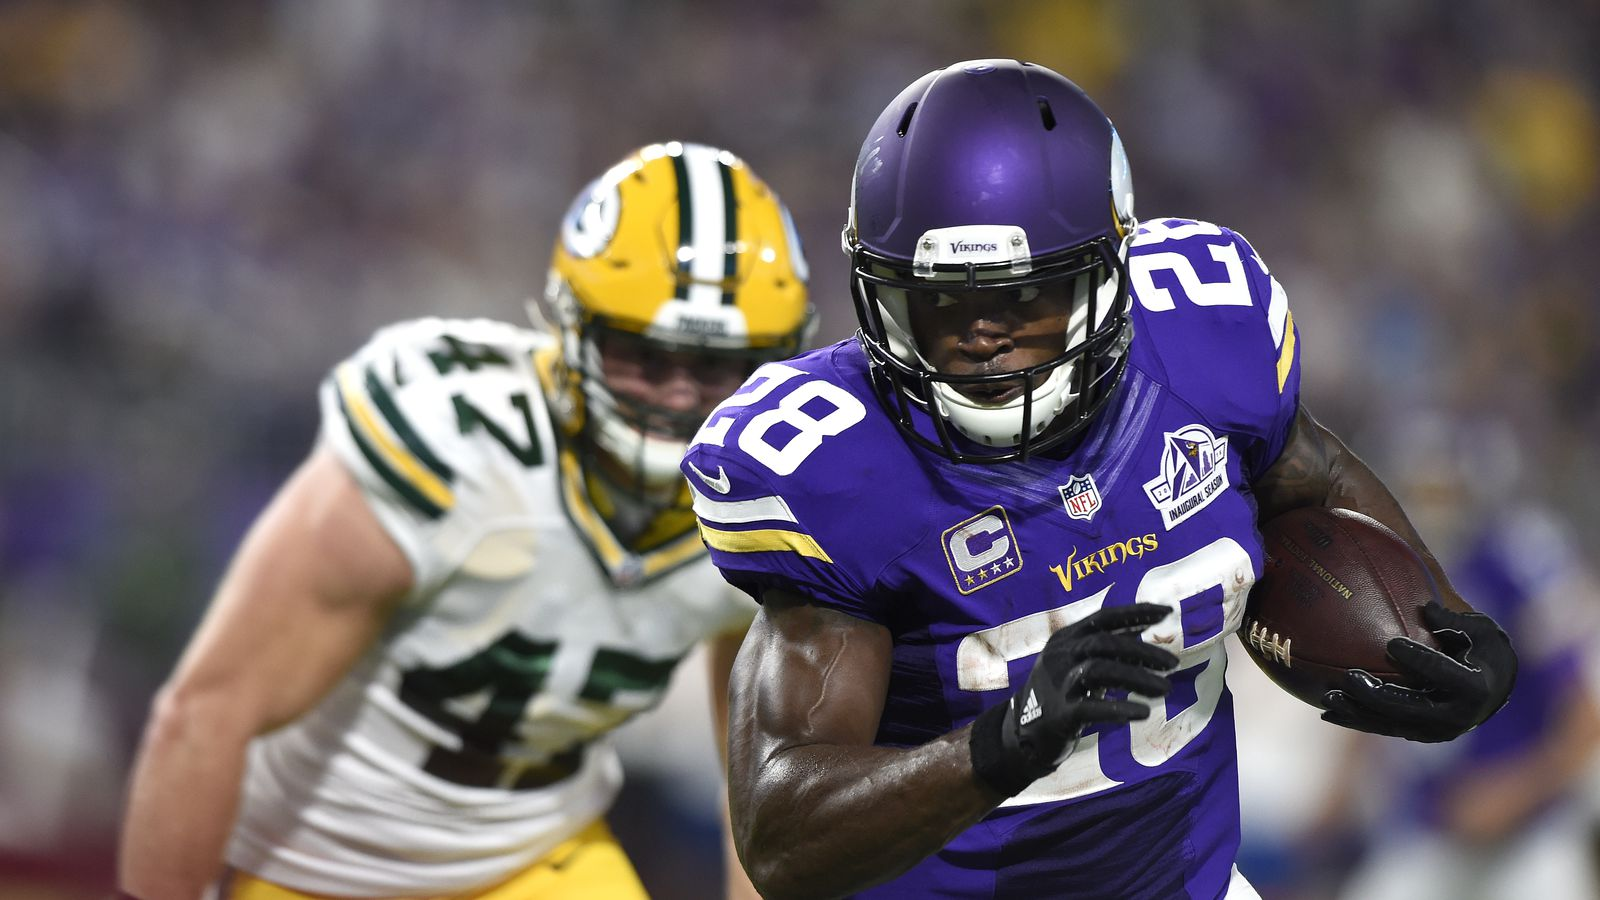 Adrian Peterson probably doesn't have the big free agency market he says he does